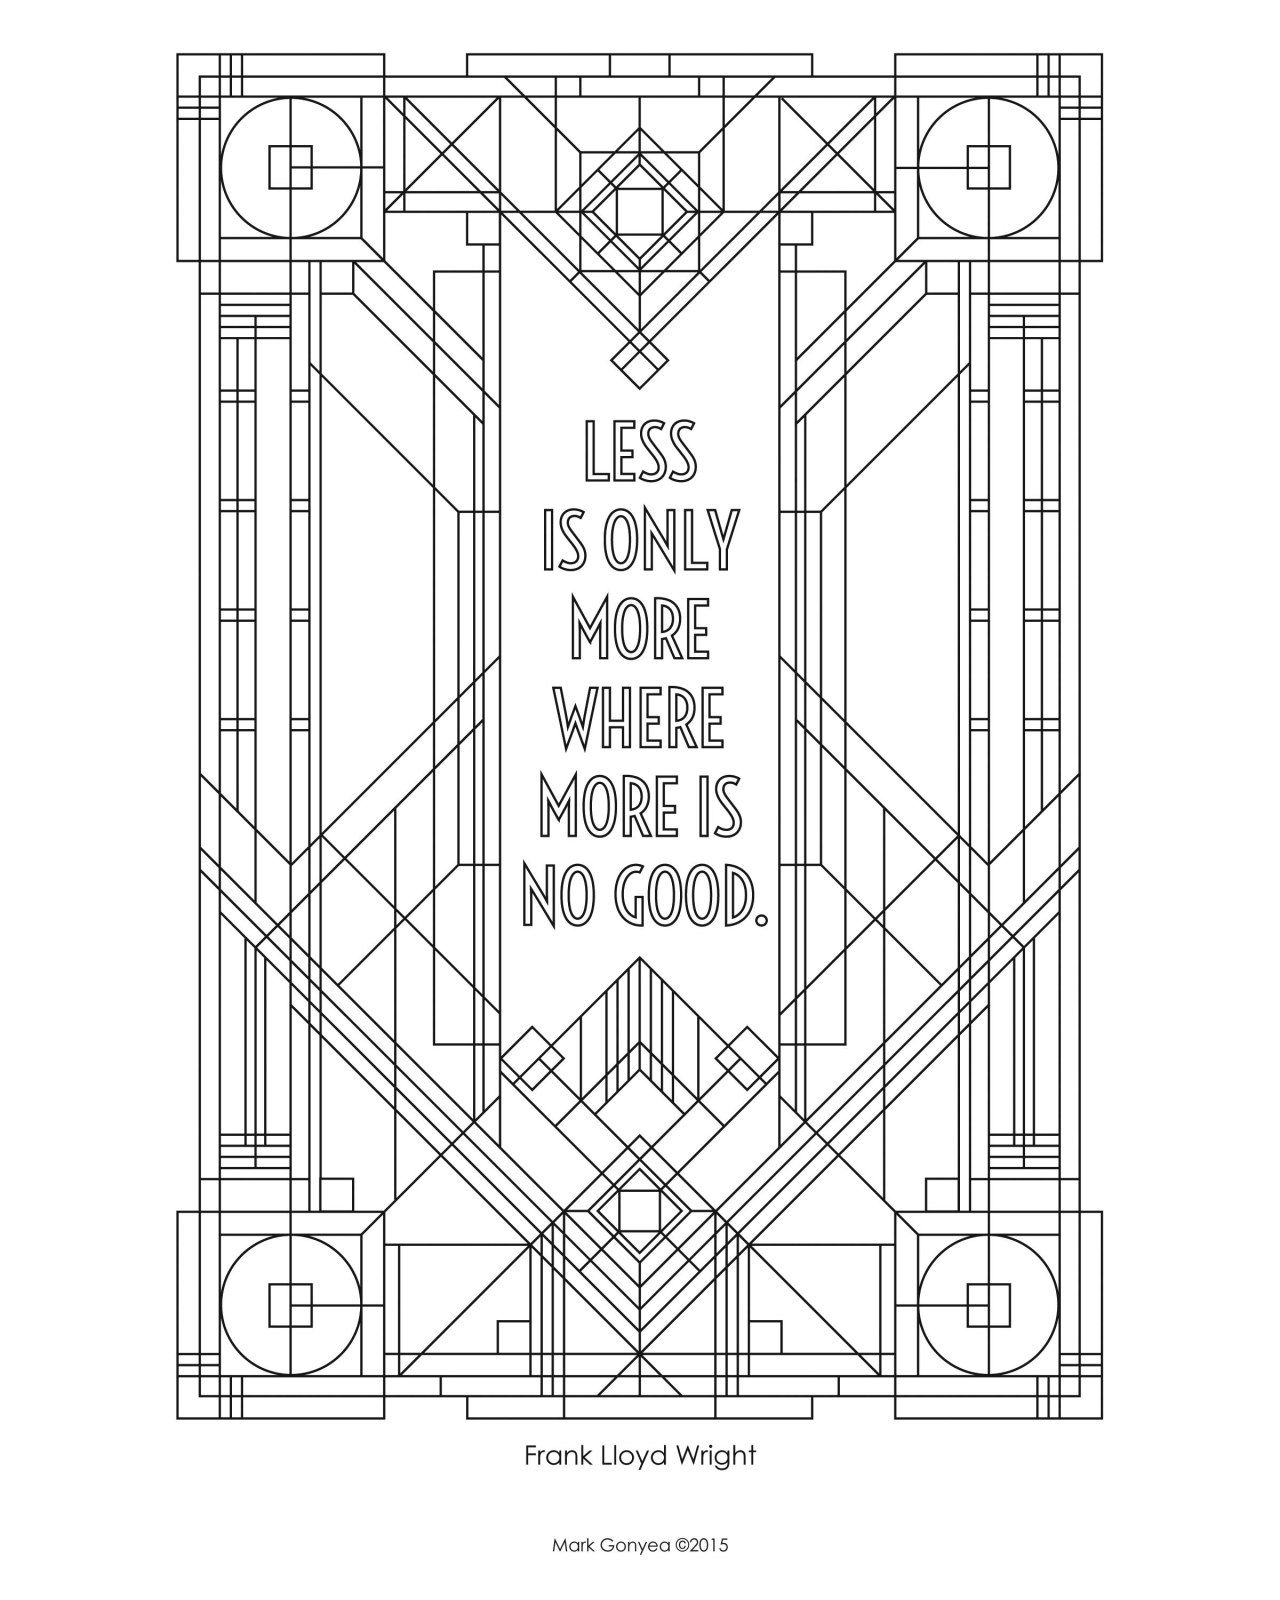 Coloring page inspired by Frank Lloyd Wright quote